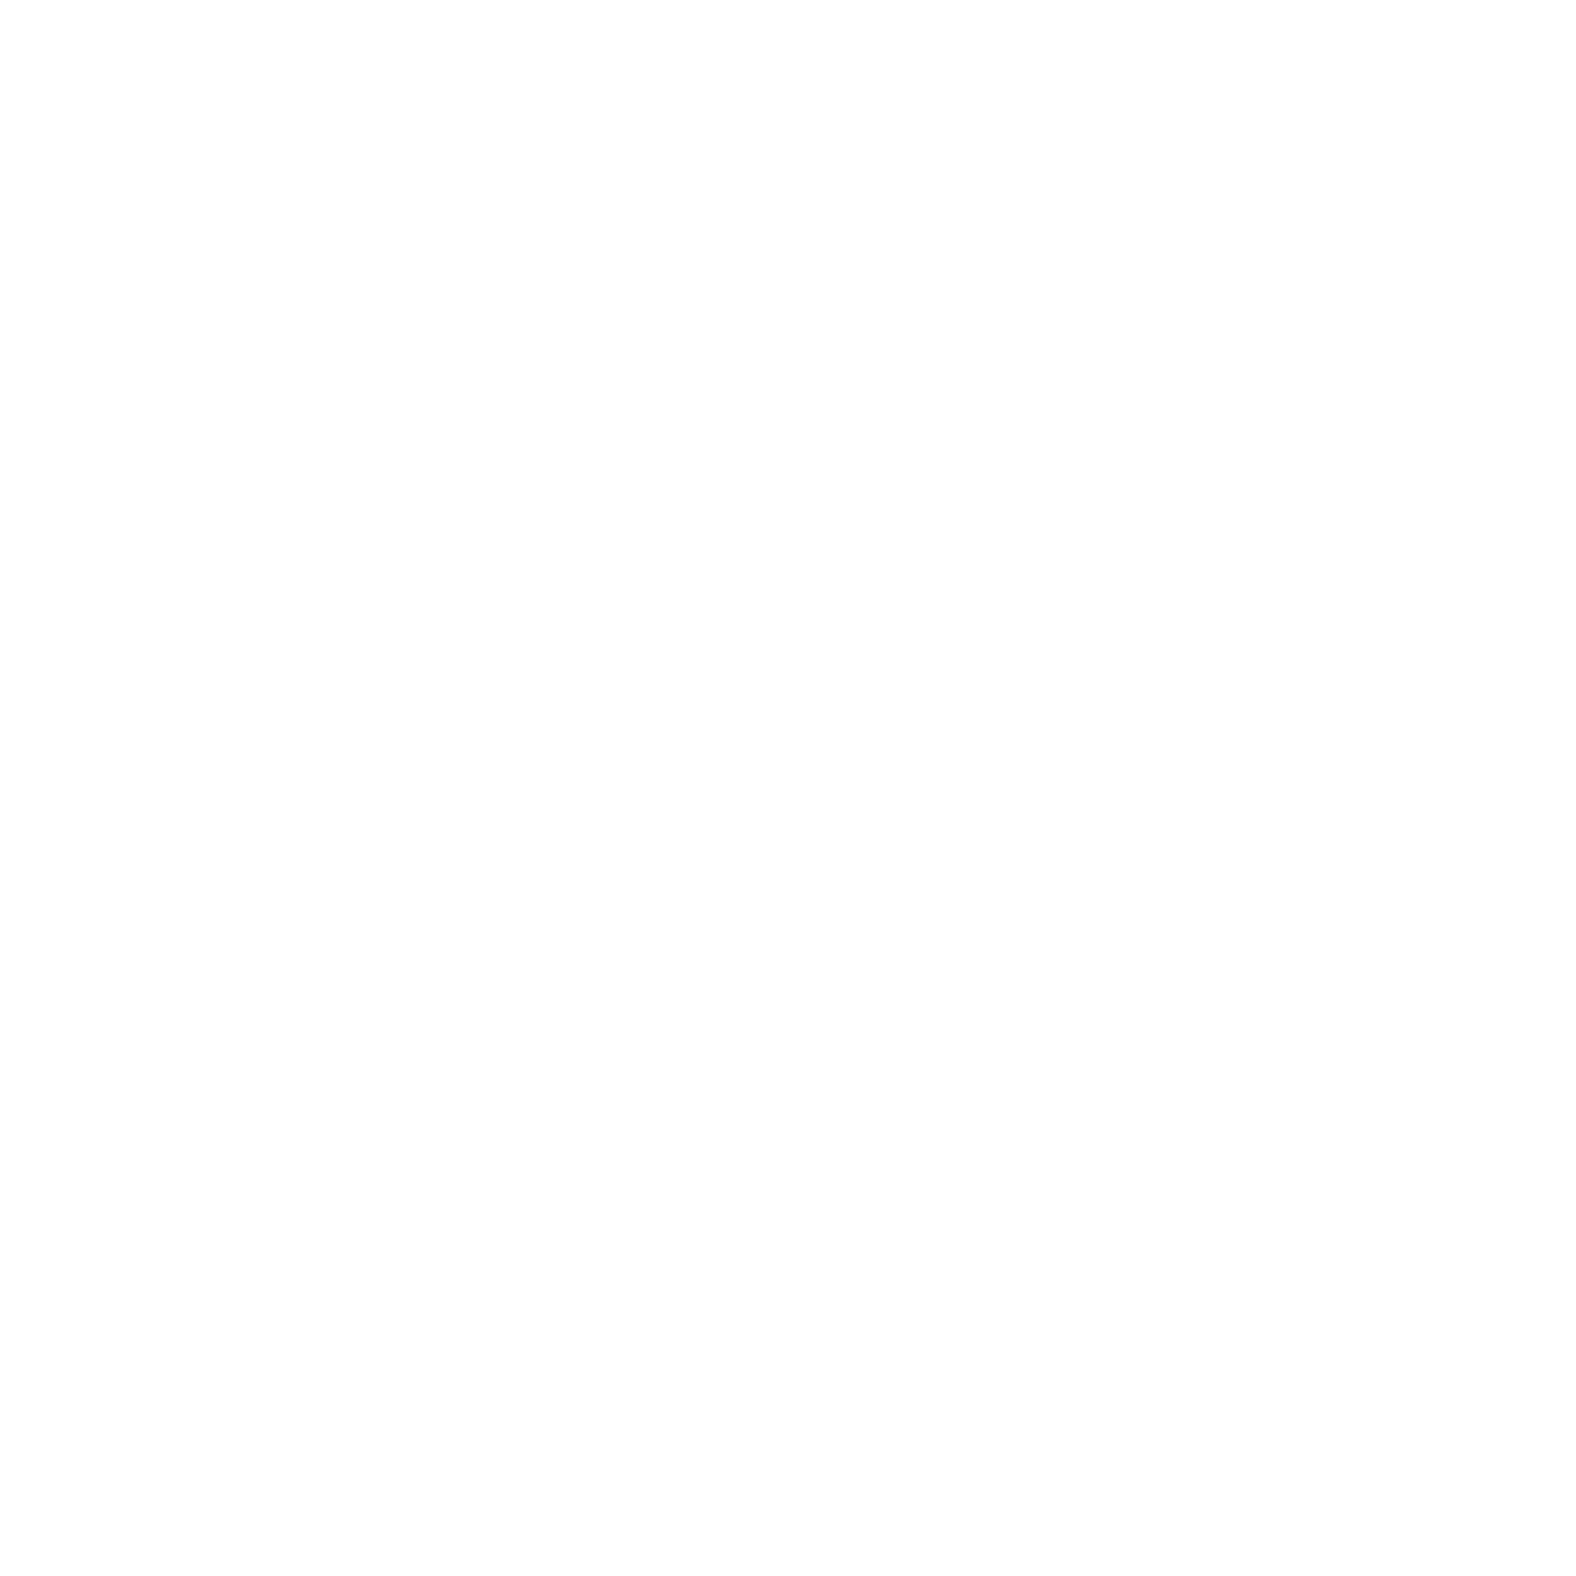 Welcome to Your New Favorite Burger Joint